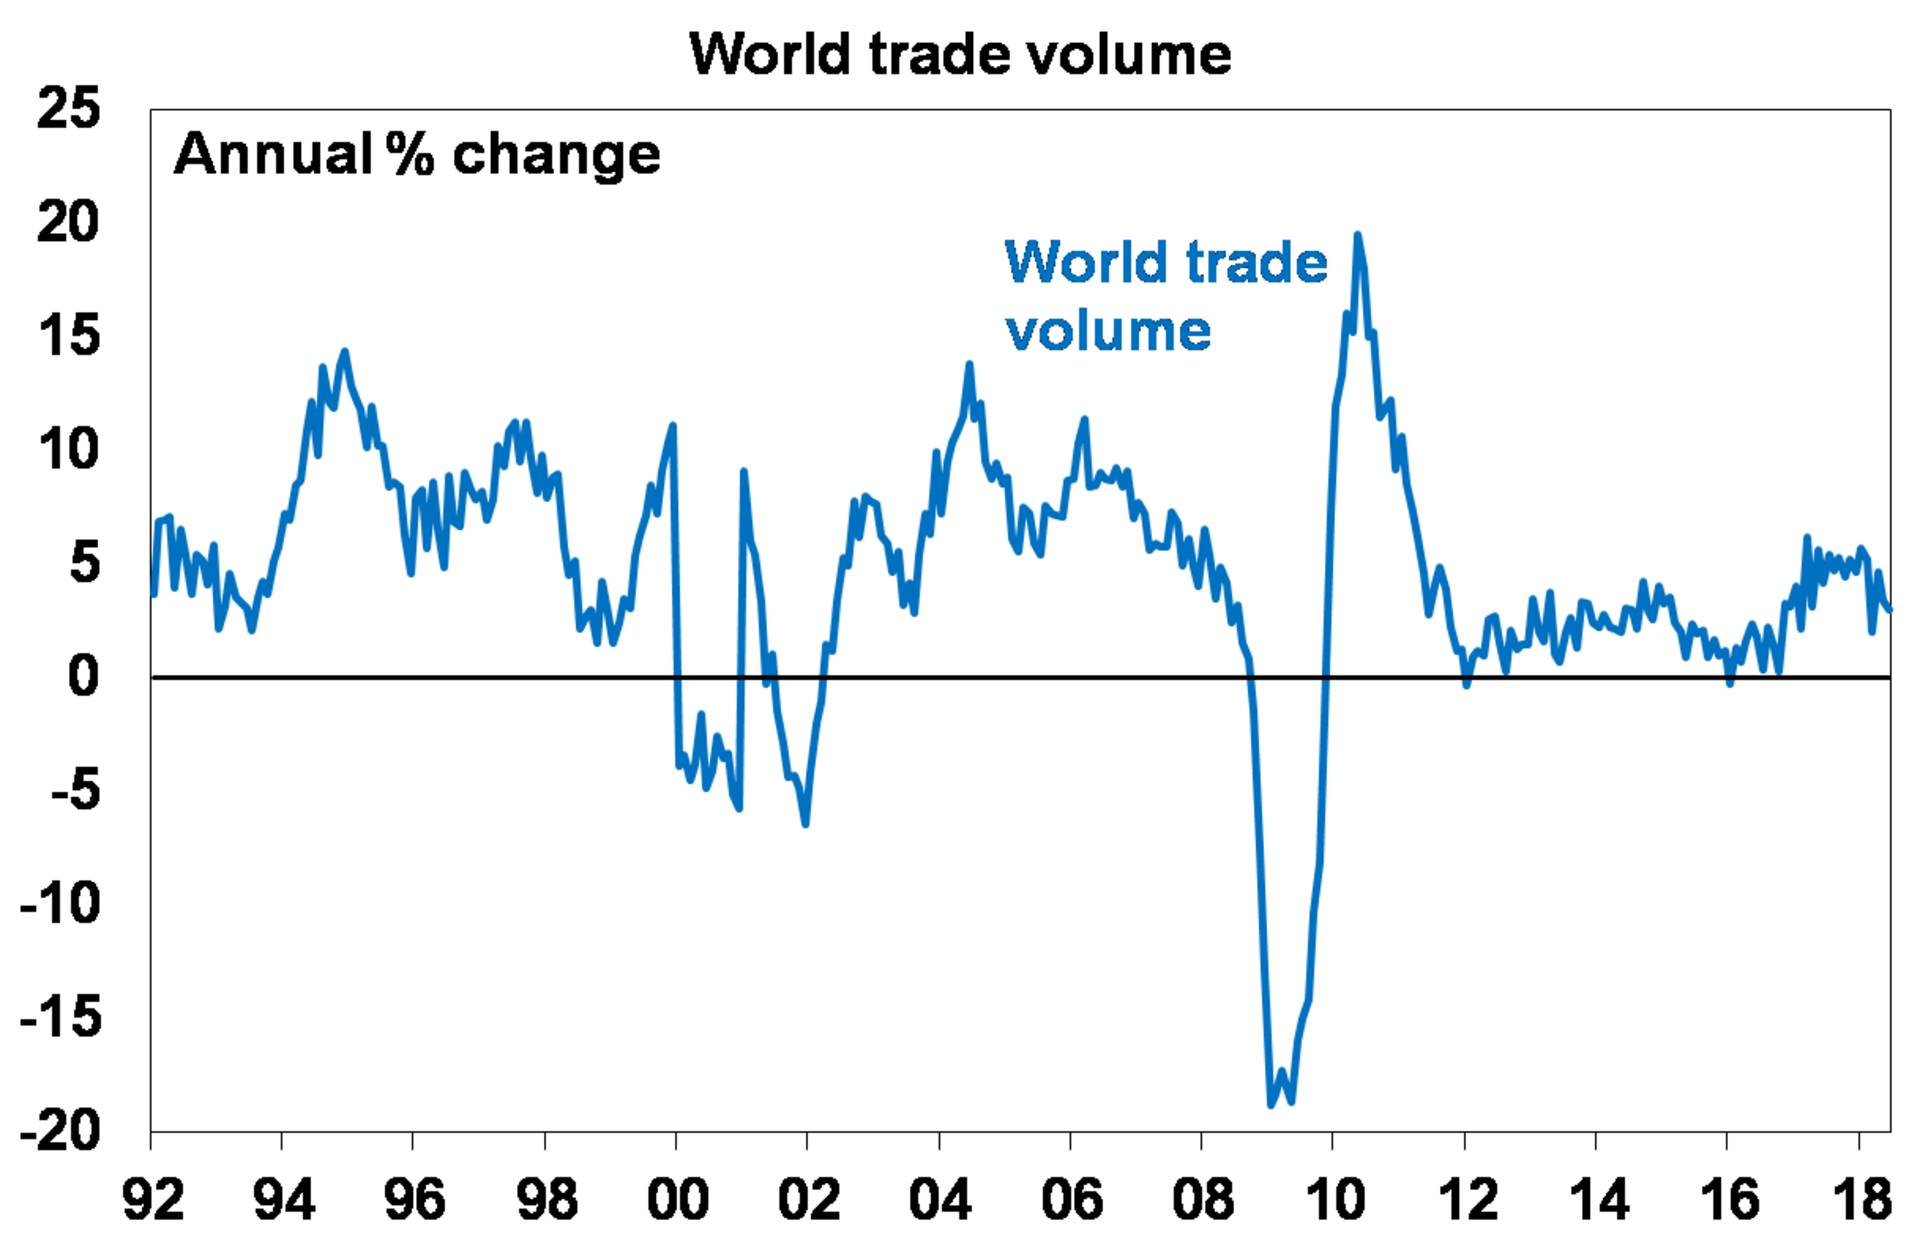 Source: CPB World Trade Volume Index, AMP Capital